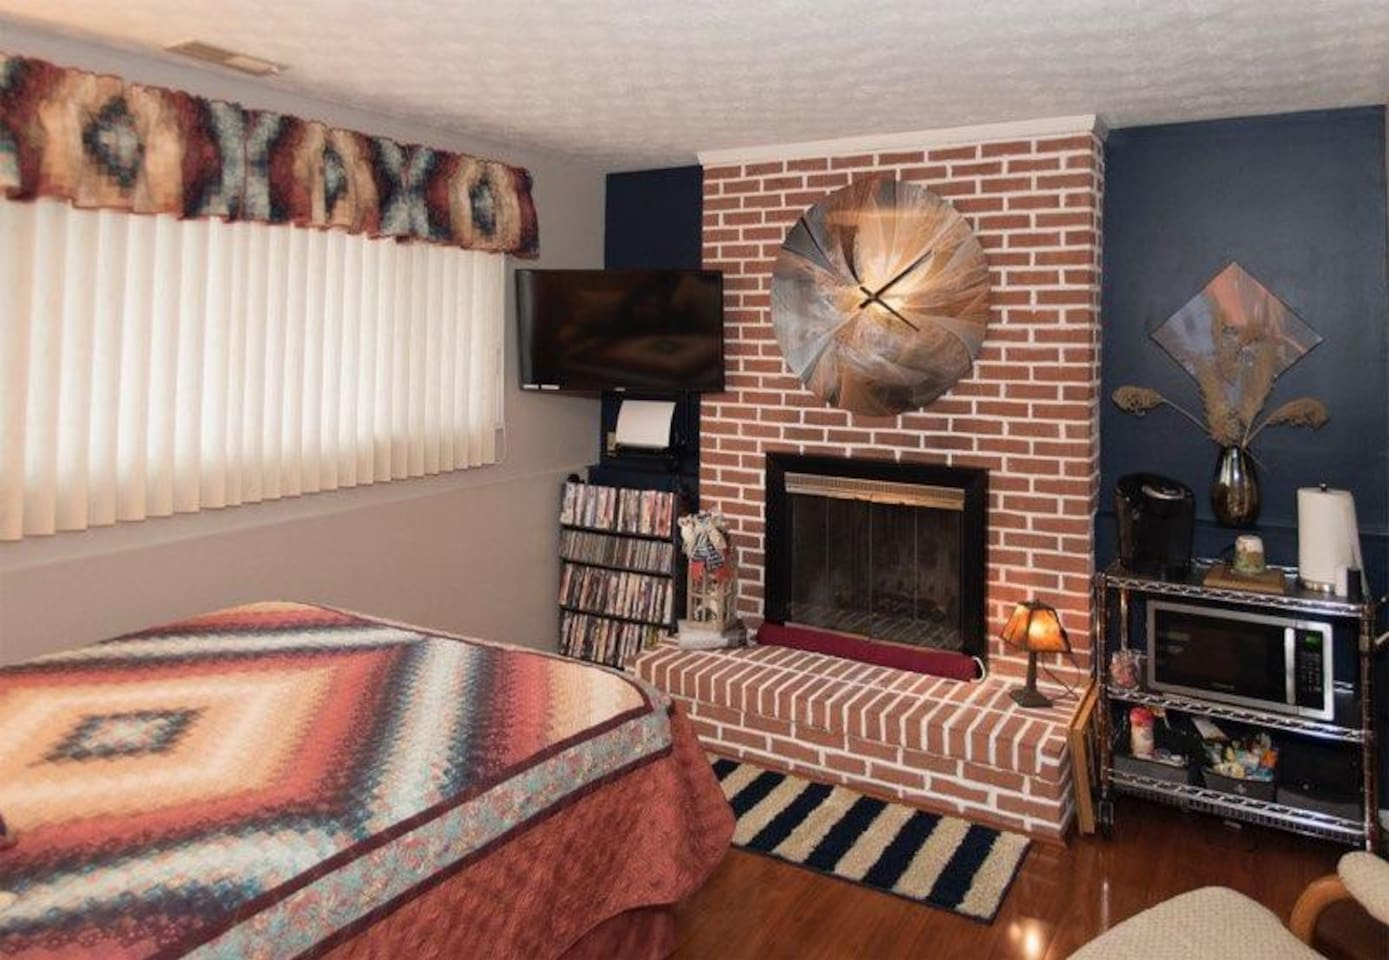 When entering the house, down the 1/2 flight of stairs & to immediate left is this warm & cozy space w/queen bed, TV, fireplace, microwave & coffee cart w/snacks & all the coffee fixings. The half bath & office area are in this space & to the right.